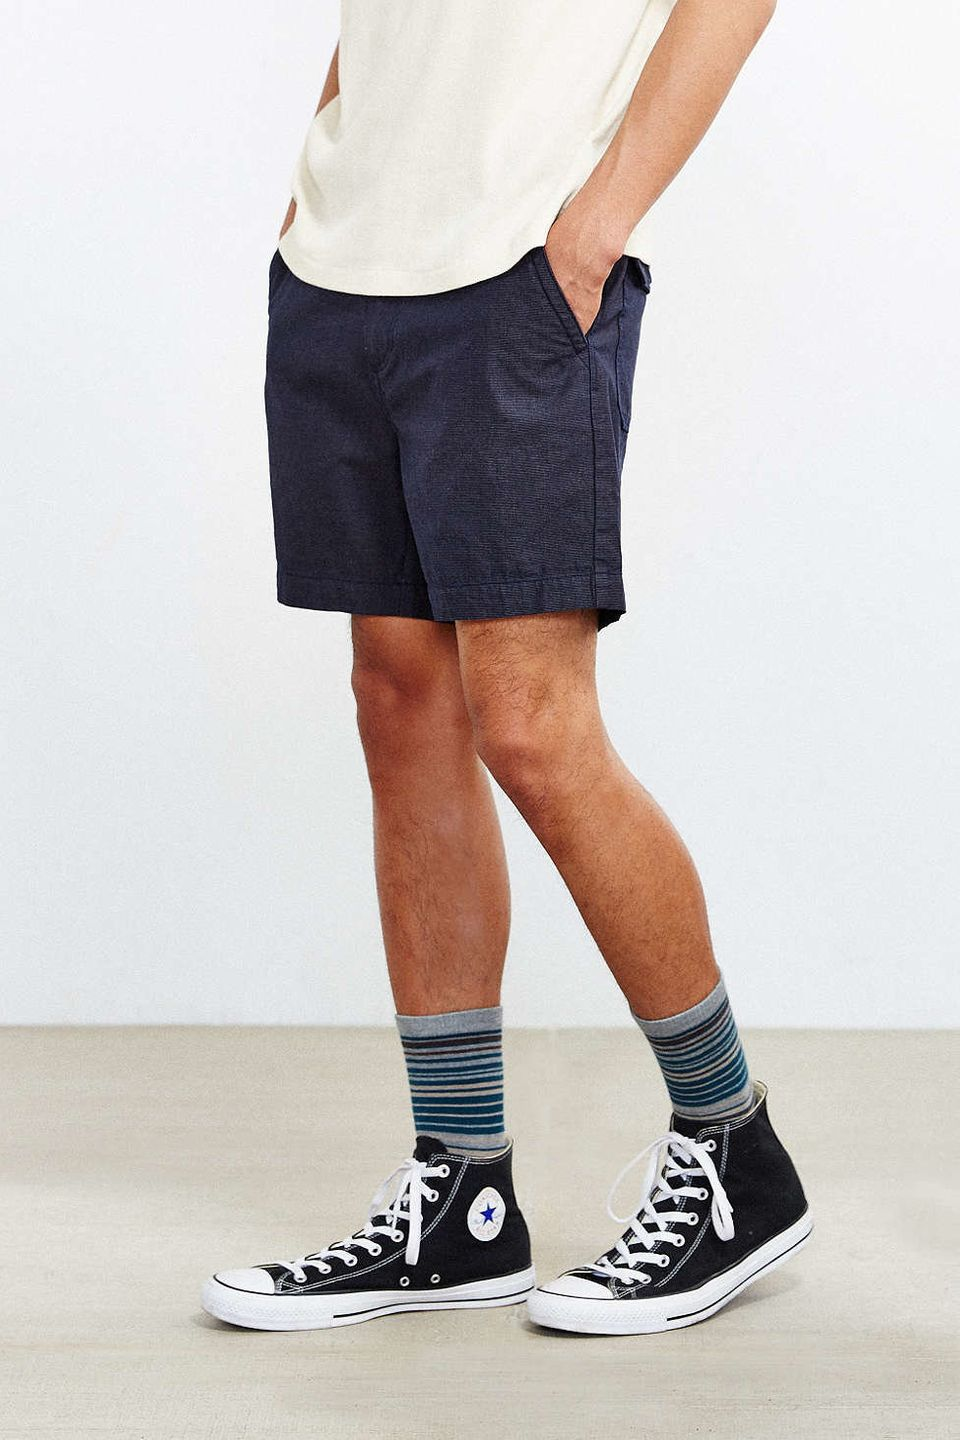 1e5302f260a5 The Everything Guide To Wearing Shorts And Socks For Men